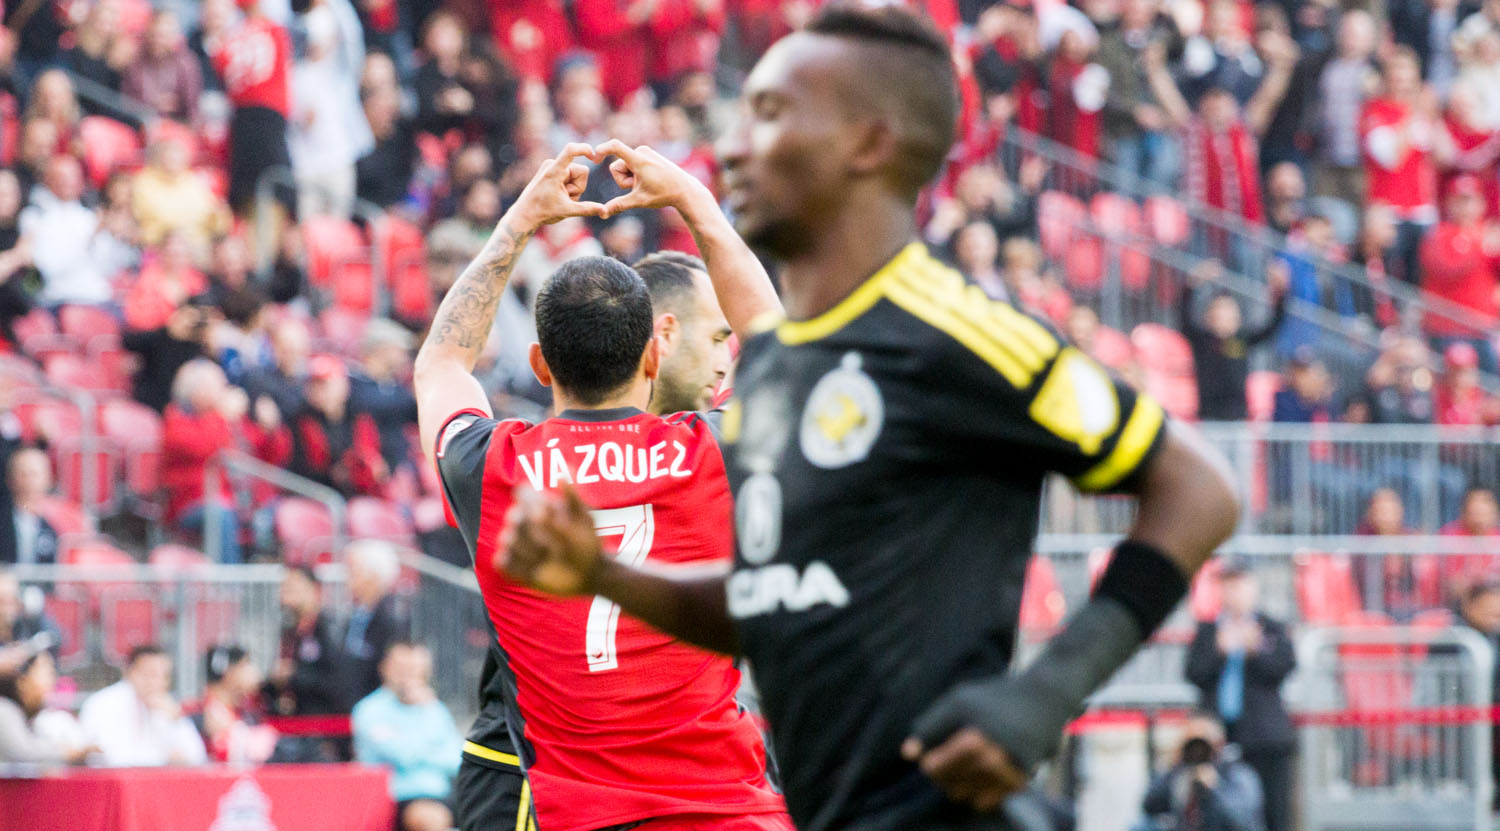 Víctor Vázquez Solsona celebrates with a heart shape after scoring against the Columbus Crew in a beautiful 5-0 win on May 26, 2017. Víctor Vázquez Solsona